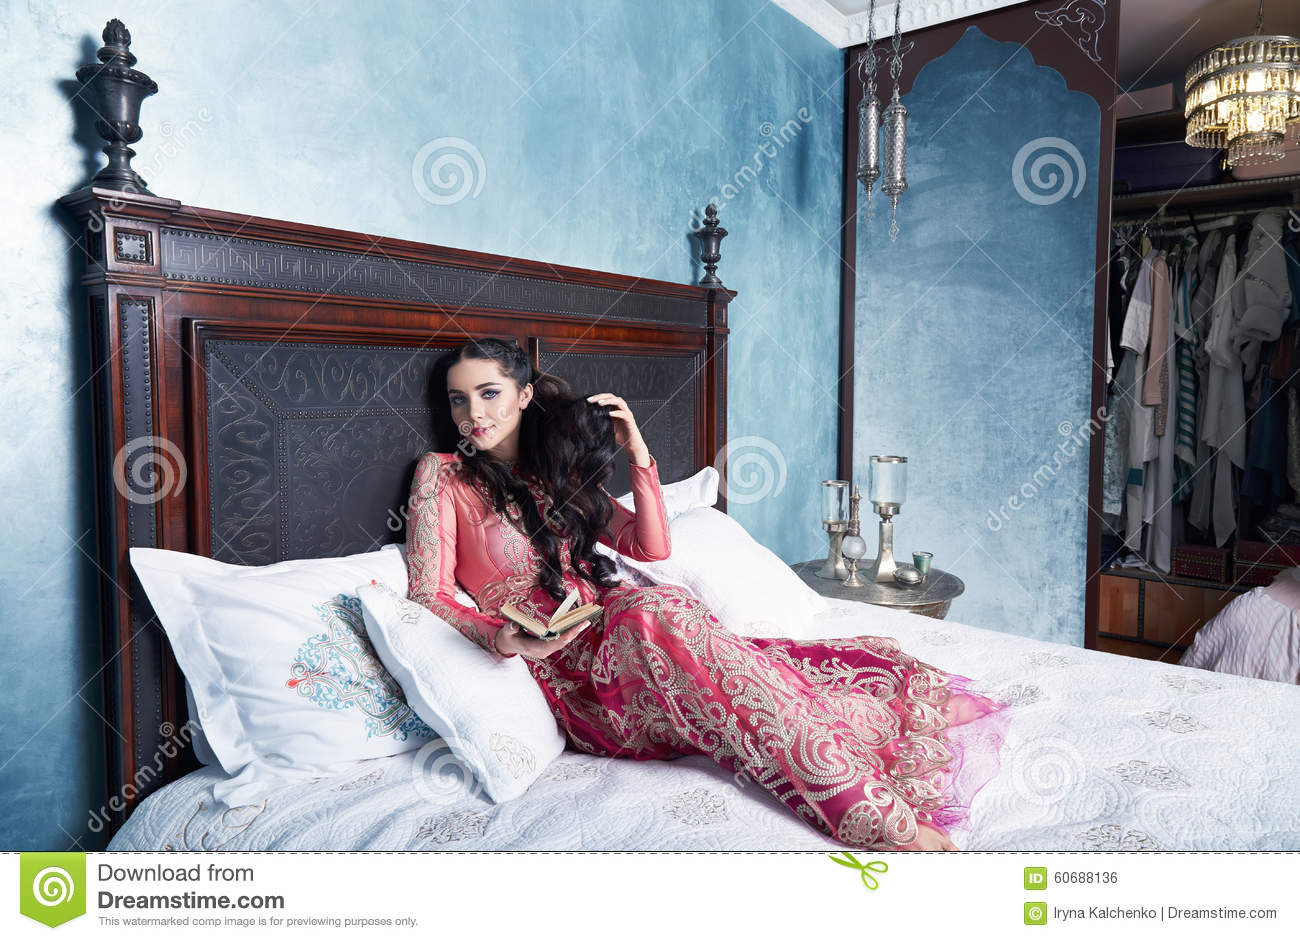 159b251ce Beautiful young woman with long dark hair brunette and decoration in  evening dress of silk lace, room bedroom in Moroccan style velvet pillows  luxurious ...